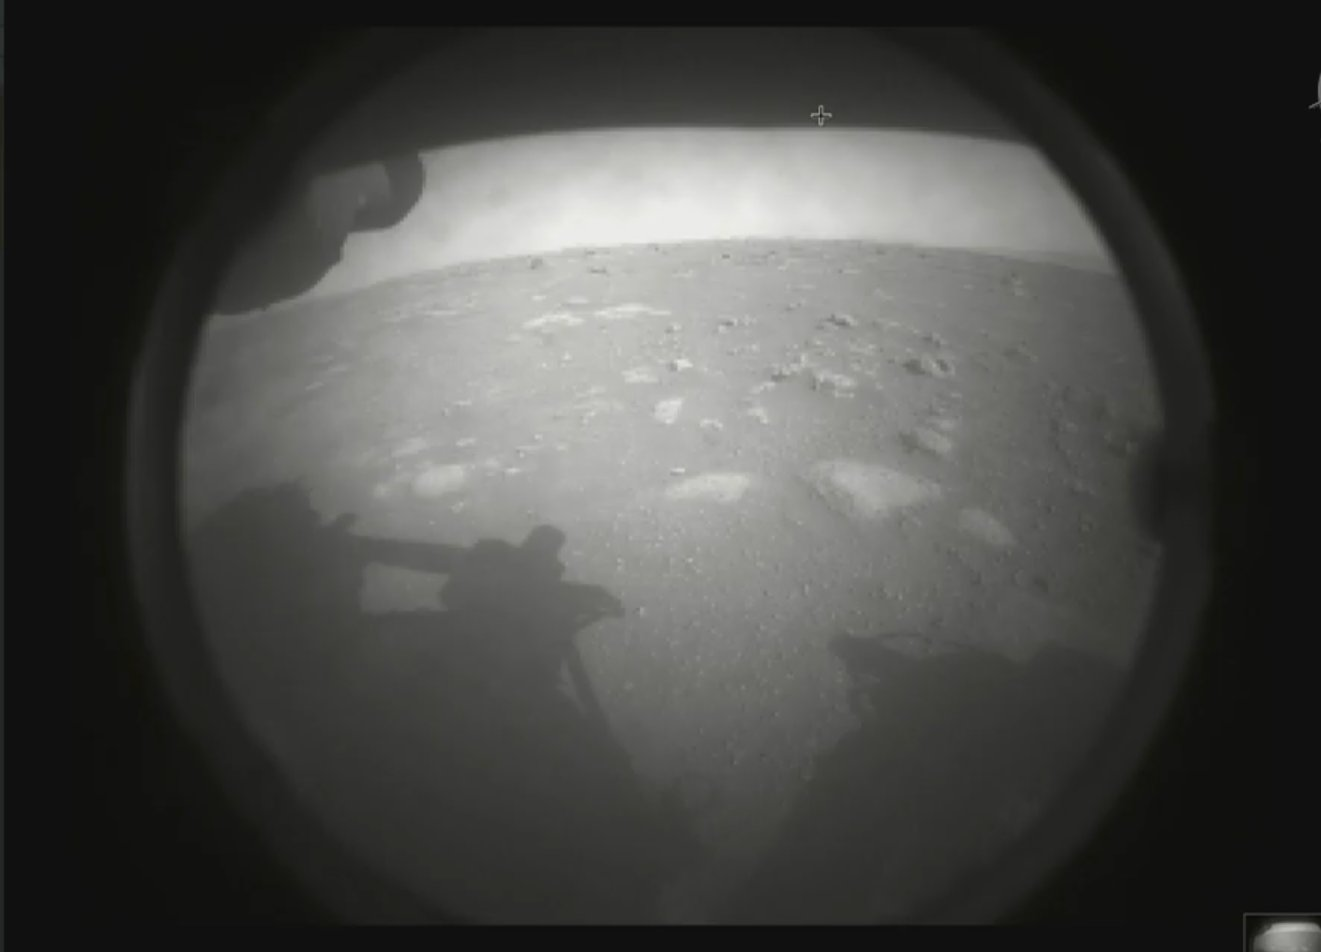 Mars Perseverance first image of Mars